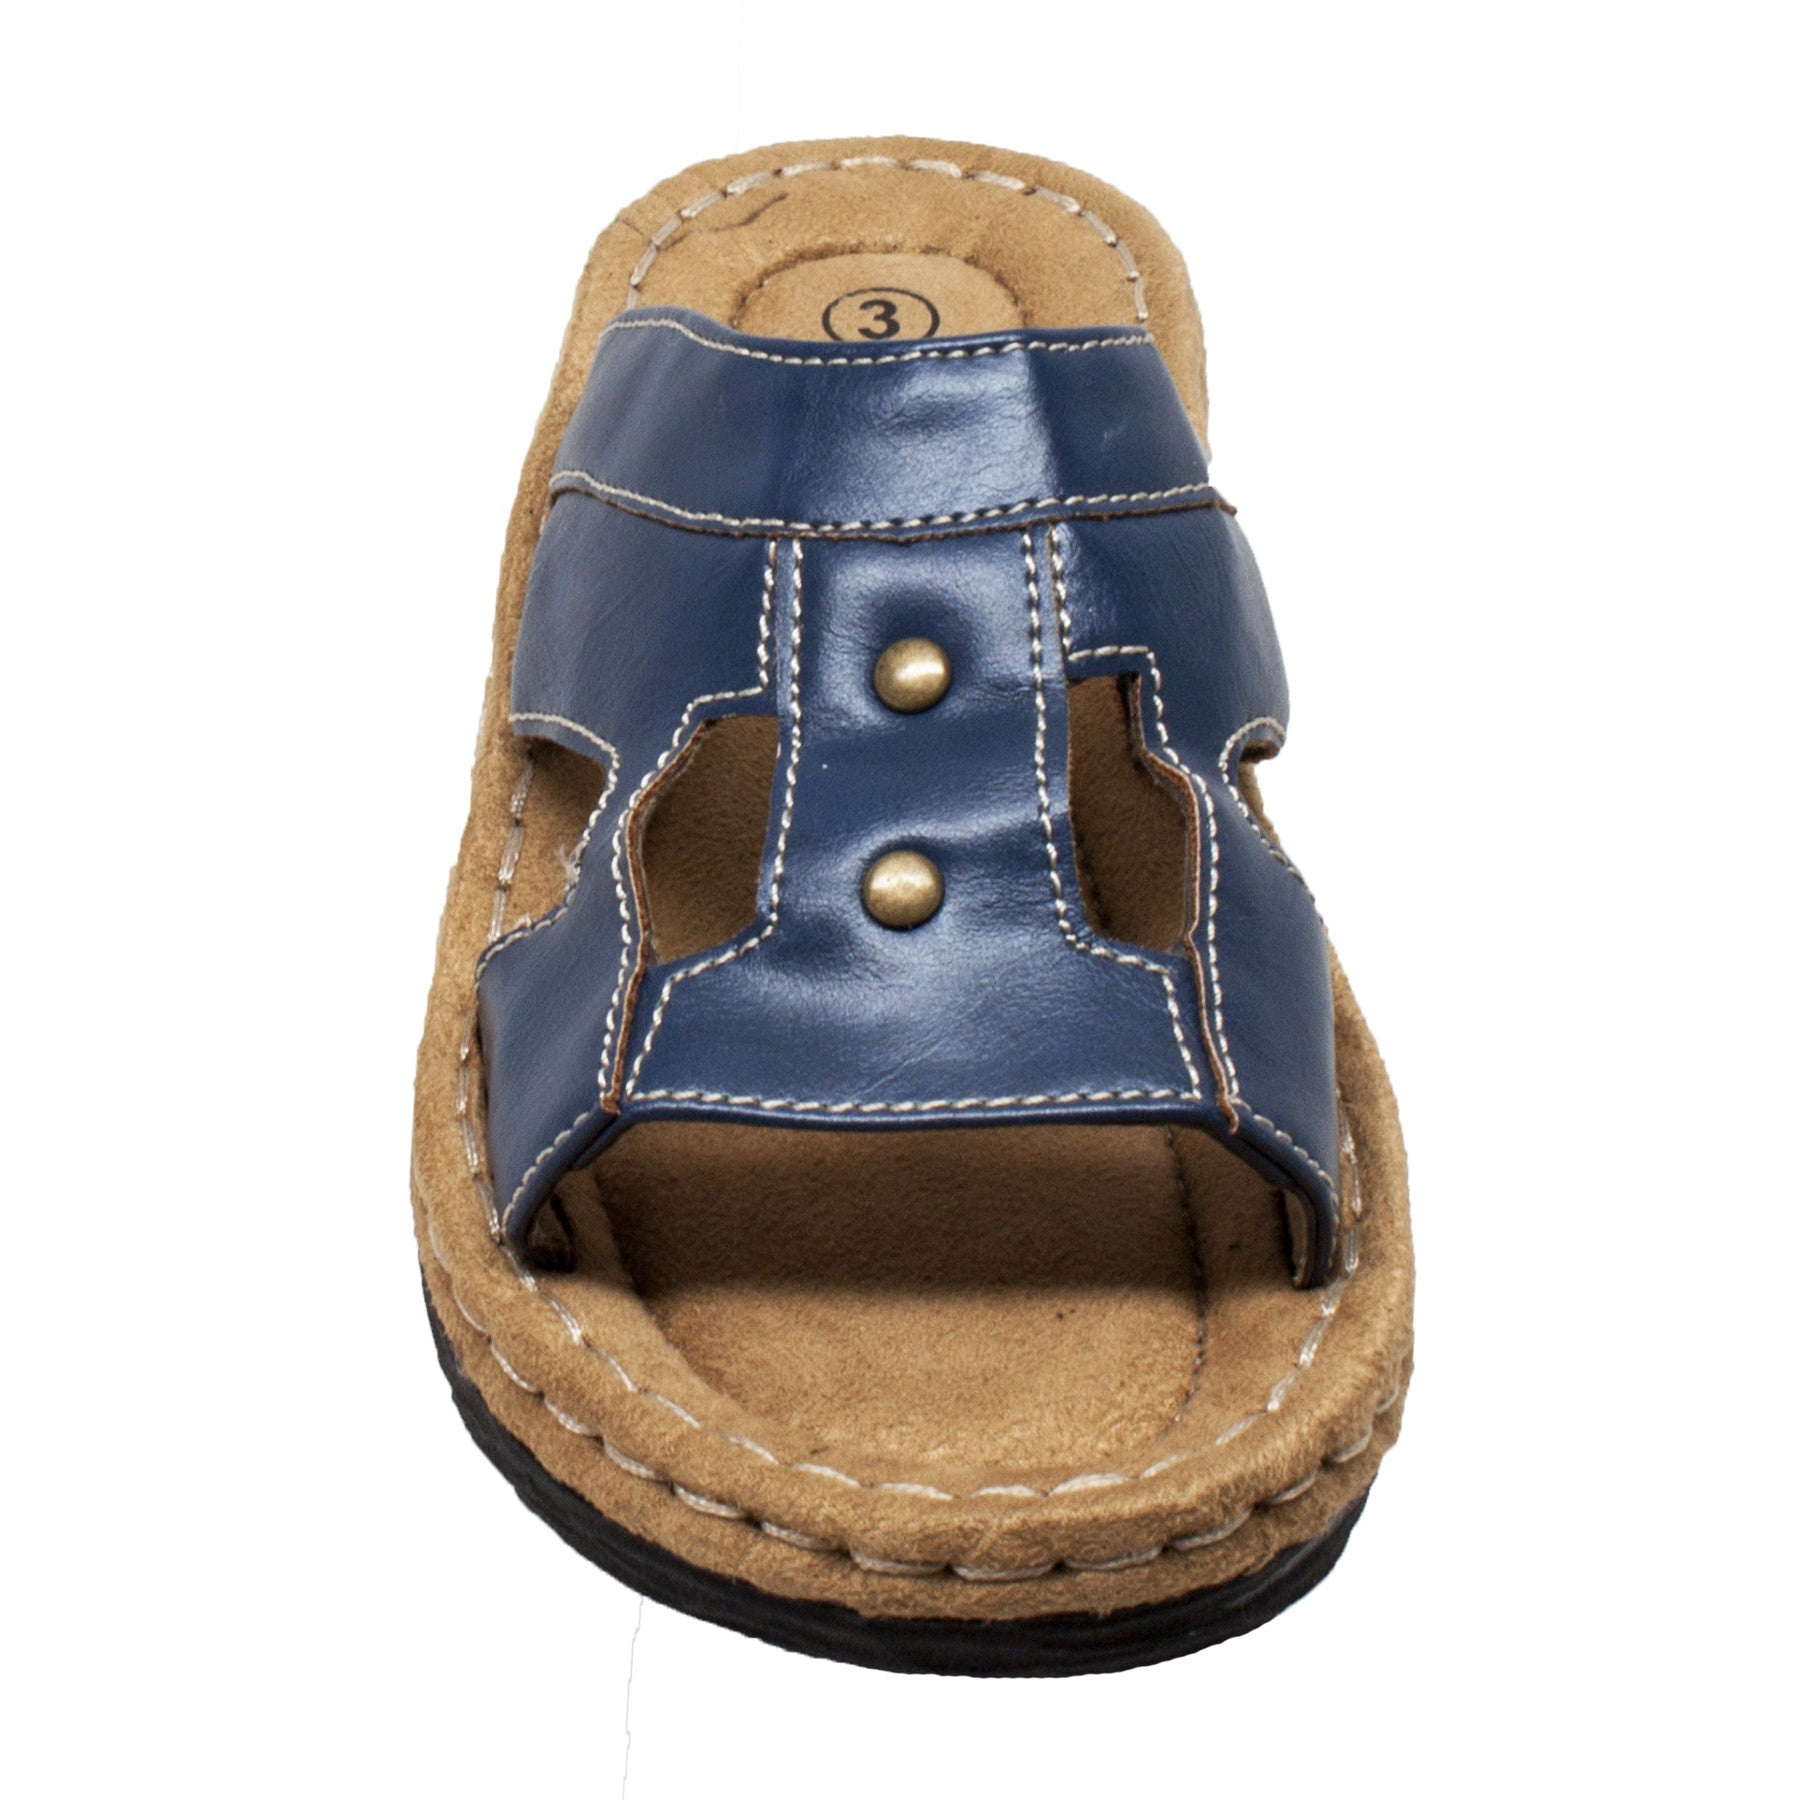 Children's Band Slide Sandal Navy - 6569-NV - Shop Genuine Leather men & women's boots online | AdTecFootWear